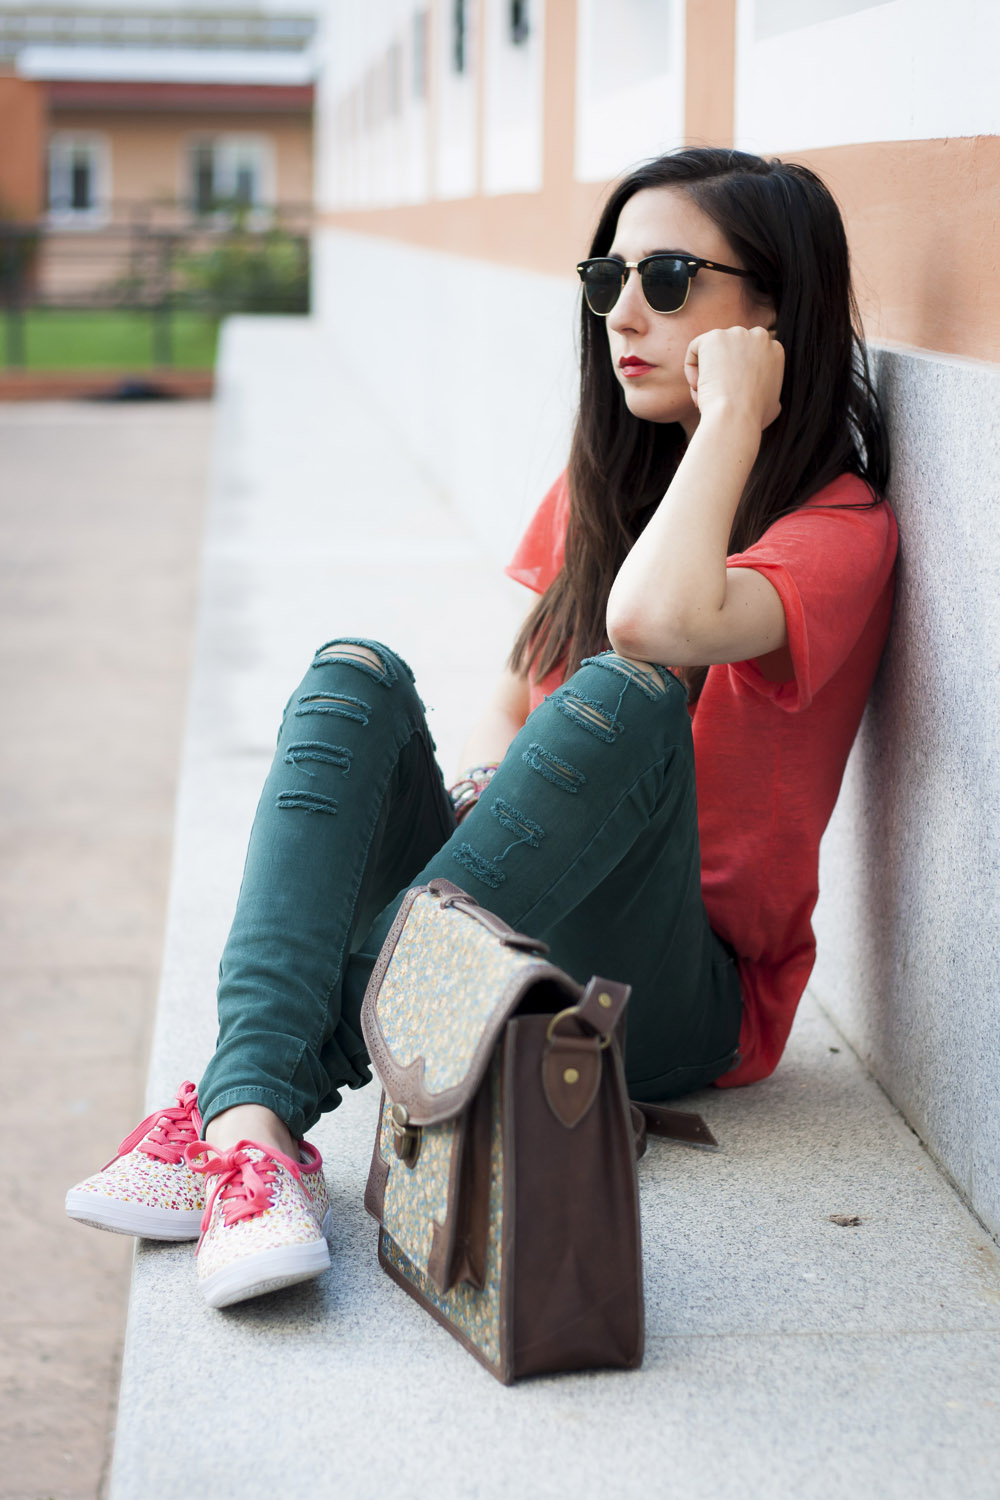 Floral Sneakers And Coral T-Shirt